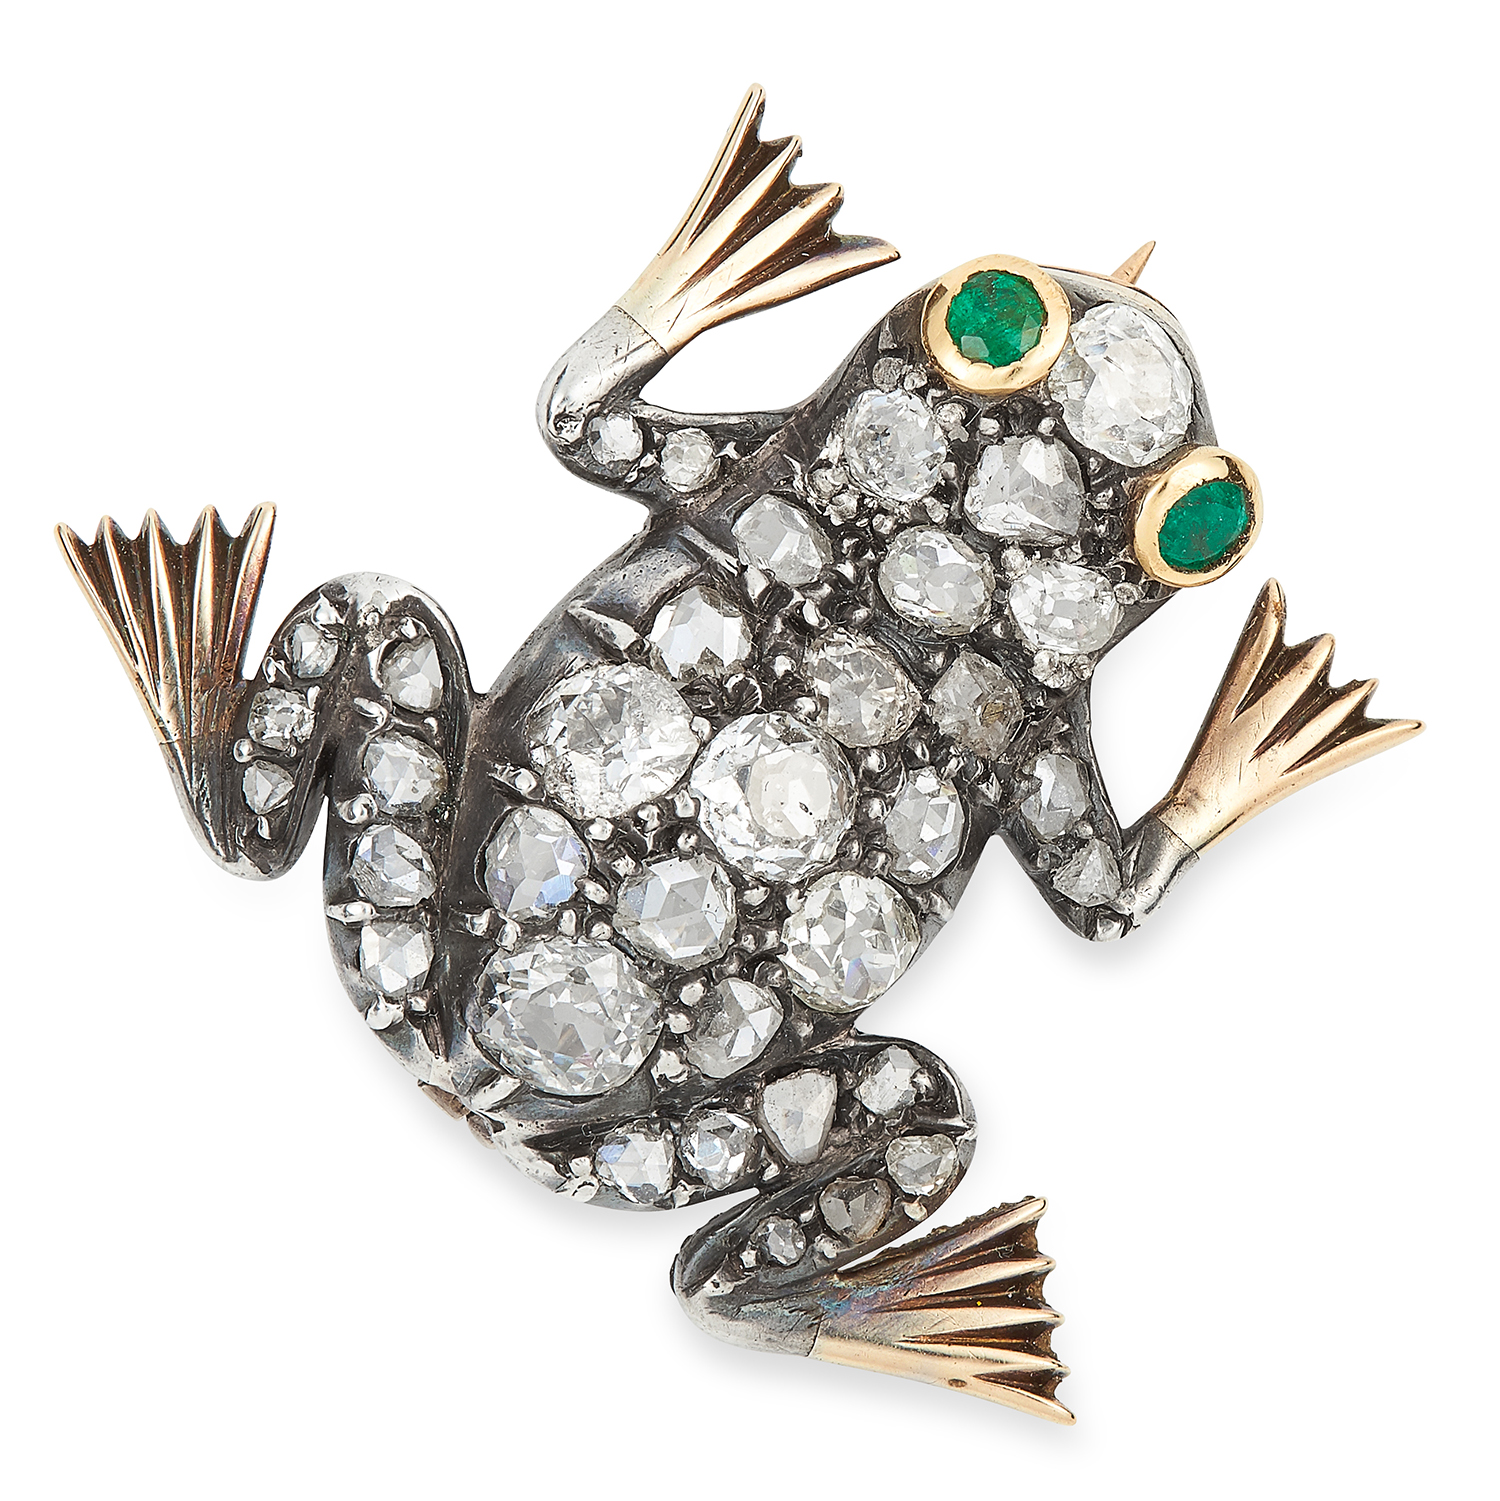 AN ANTIQUE DIAMOND AND EMERALD FROG BROOCH in yellow gold and silver, set with old cut diamonds